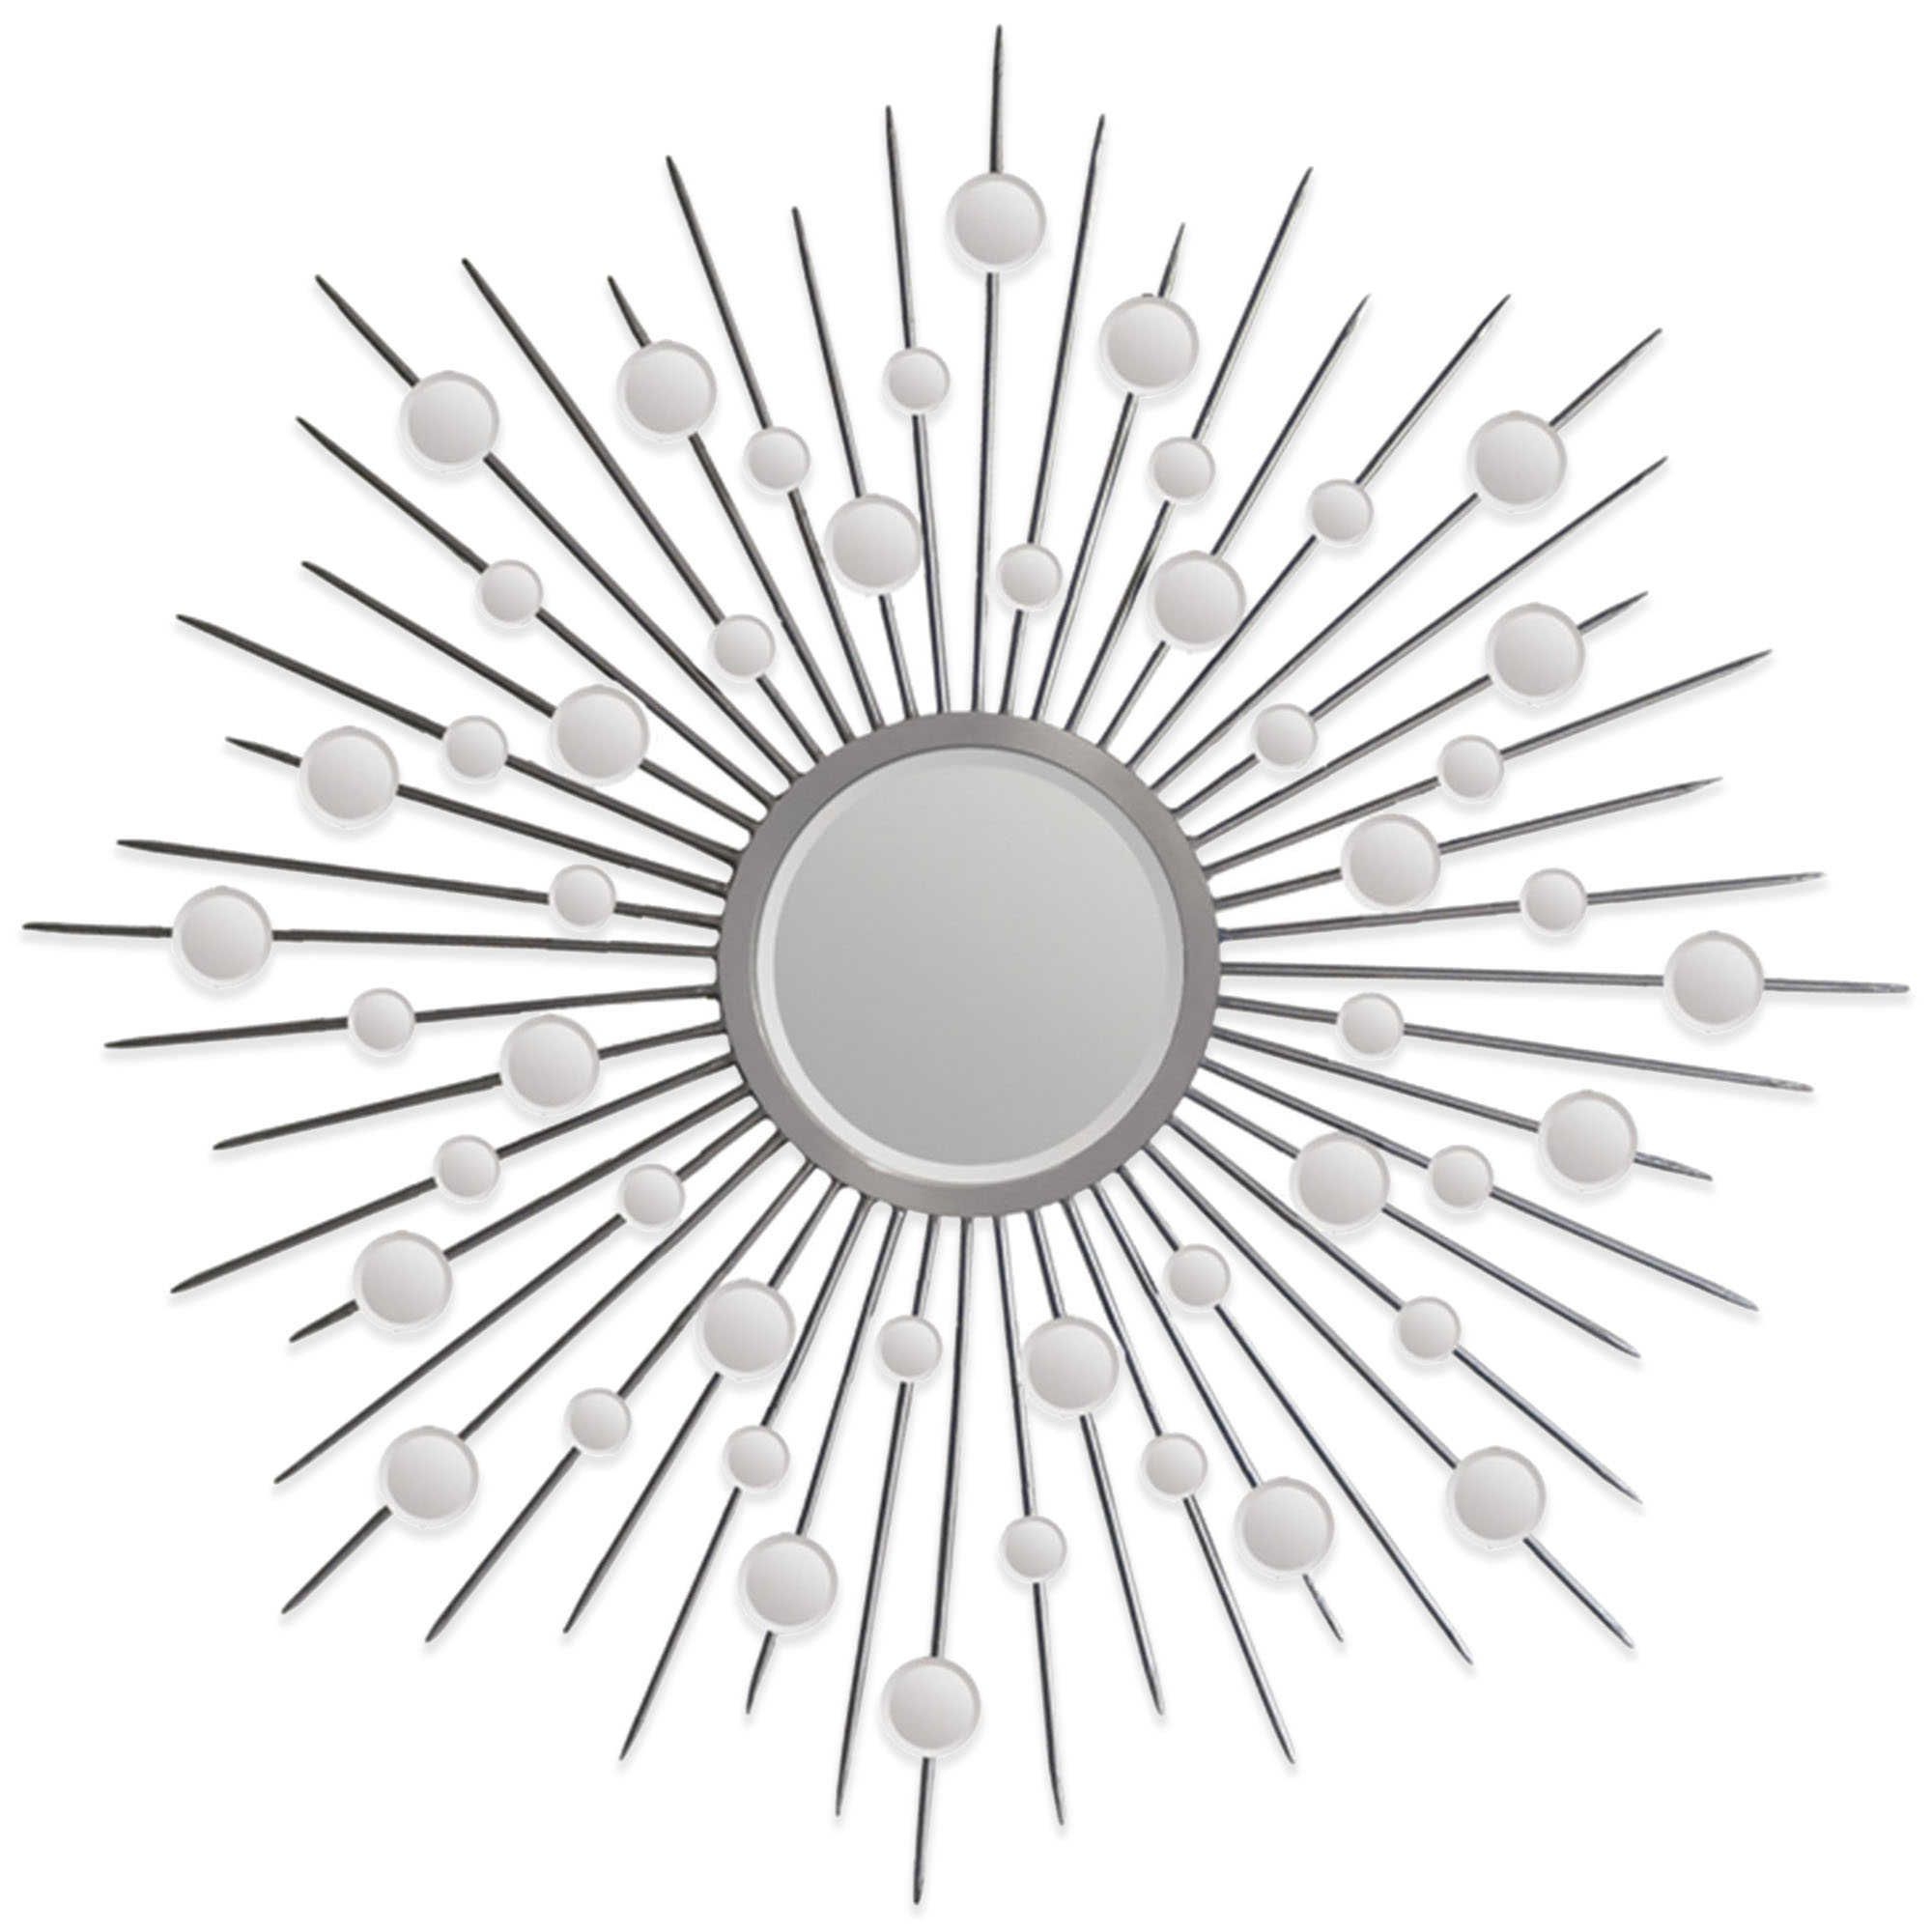 Ren Wil 45 Inch X 45 Inch Starburst Onice Mirror In Silver Pertaining To Estrela Modern Sunburst Metal Wall Mirrors (View 20 of 20)